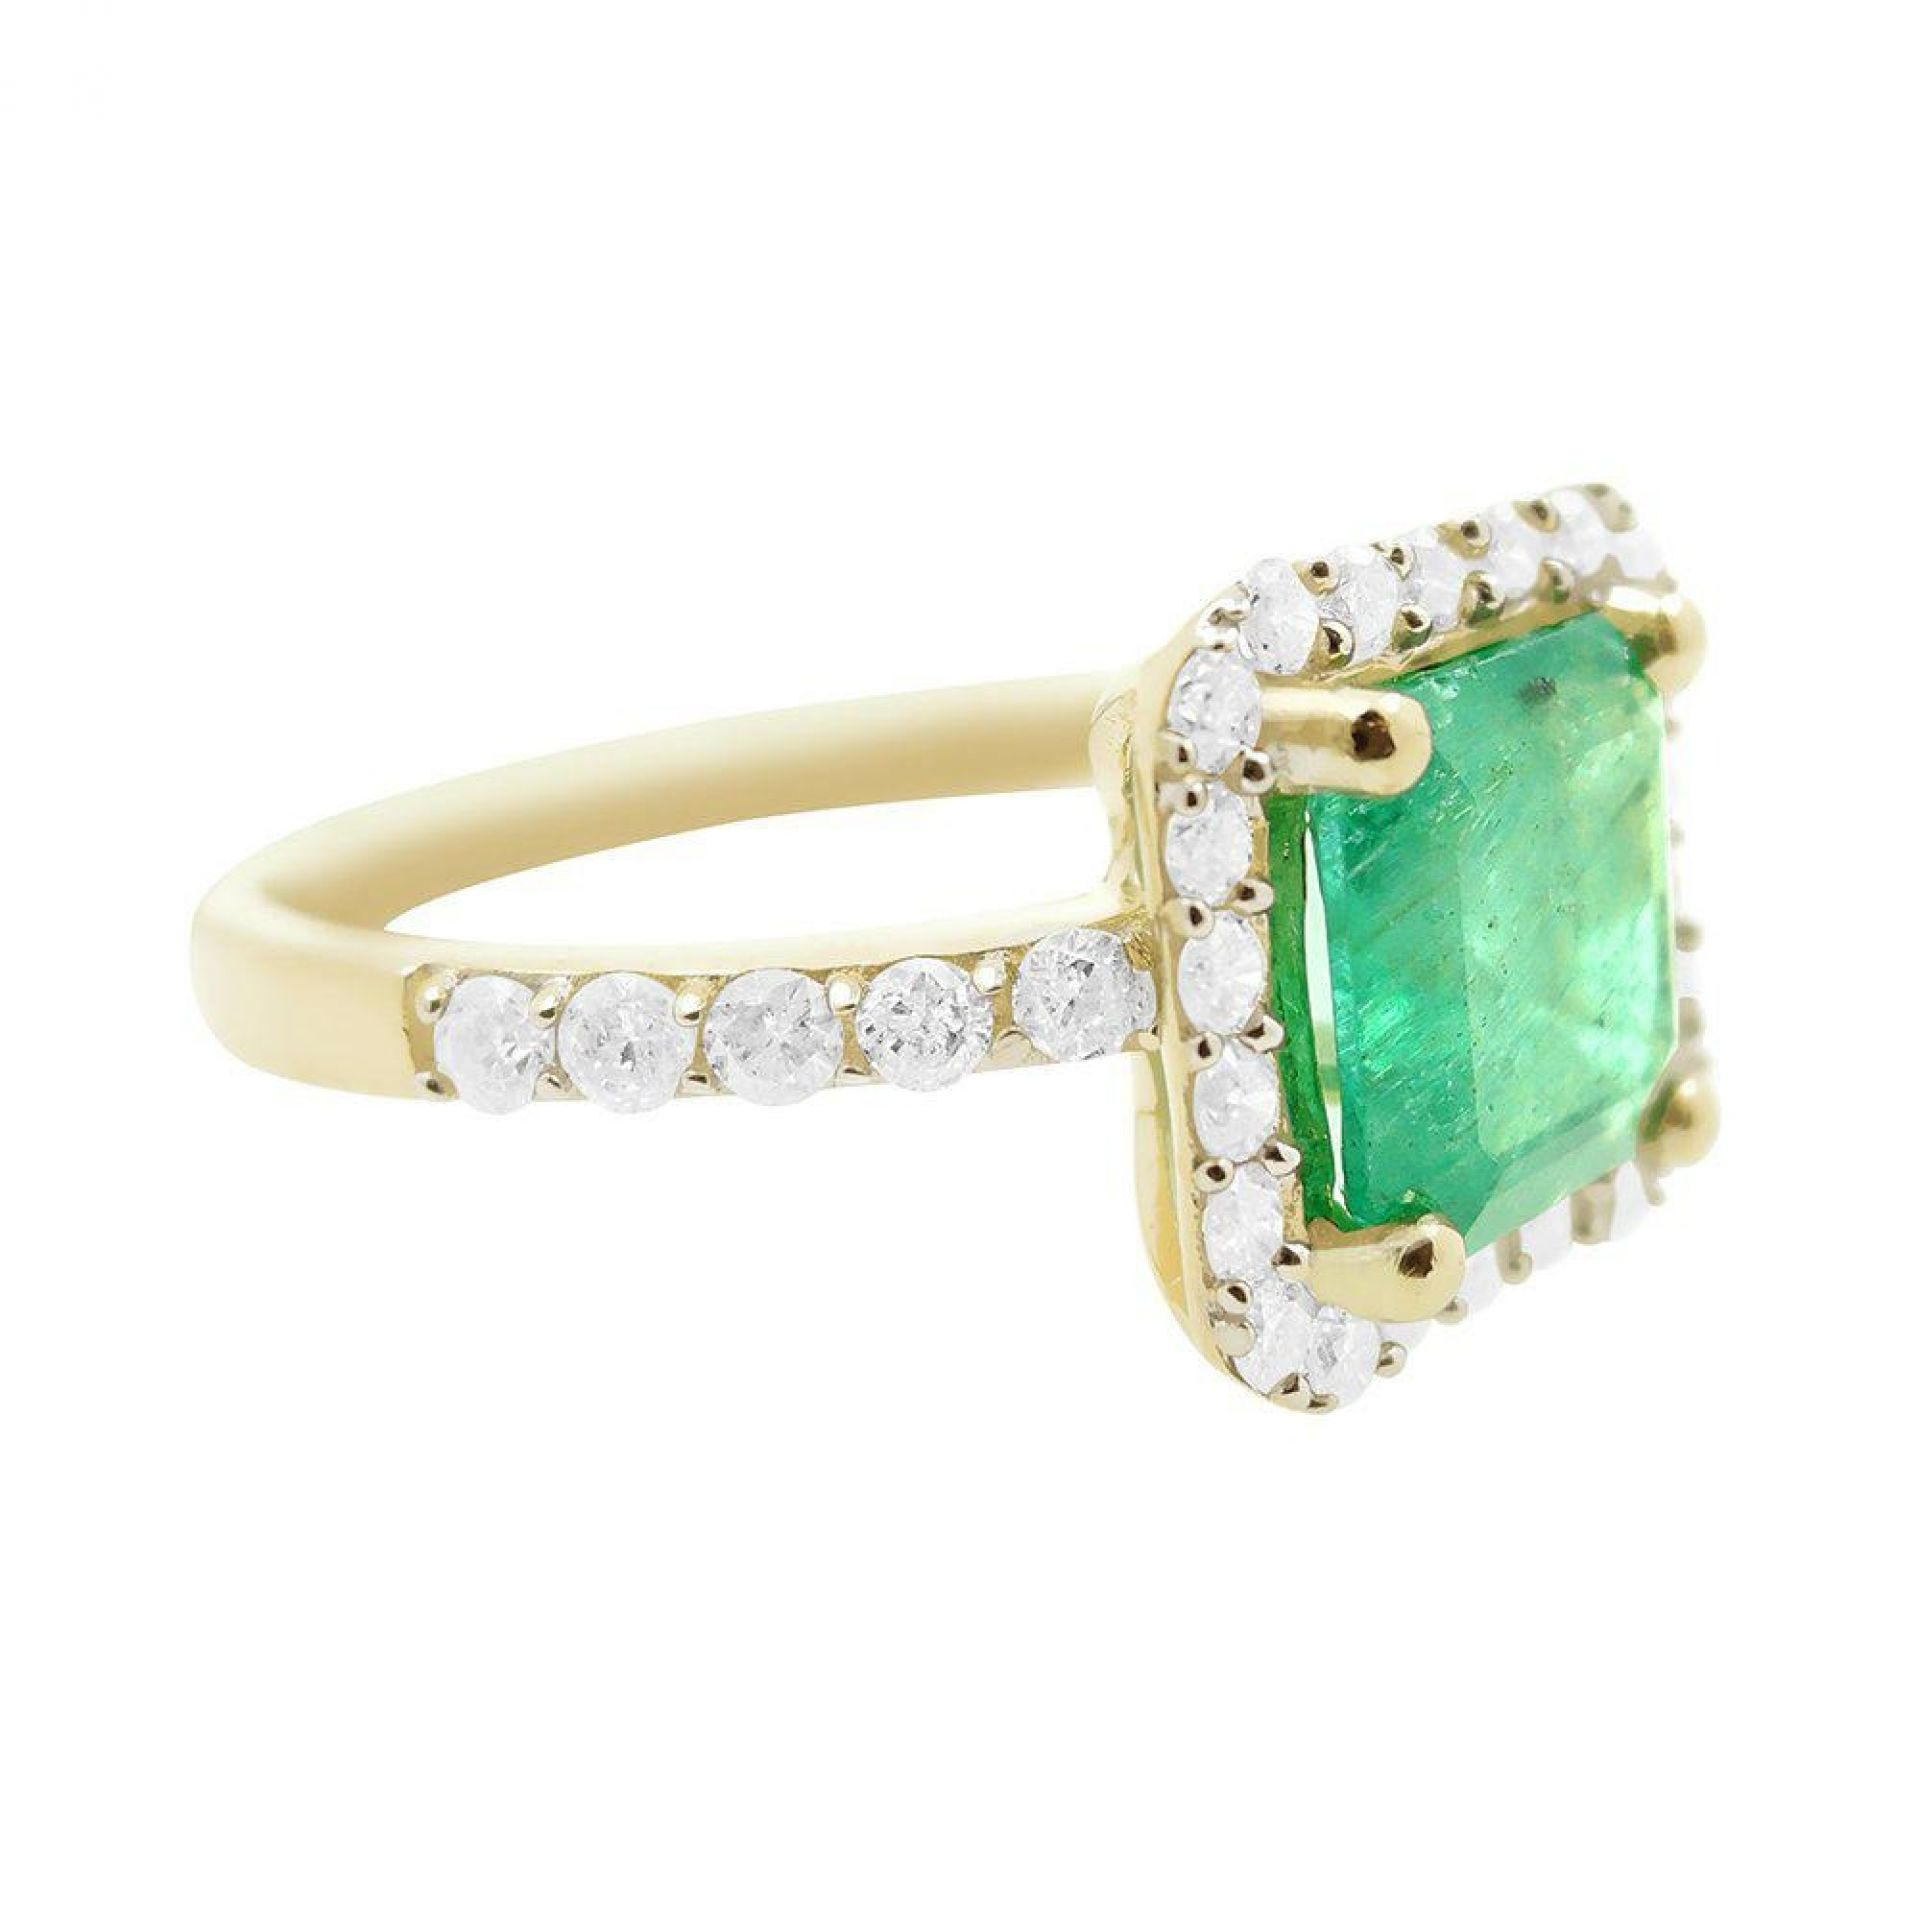 1.66ct Emerald and 0.51ctw Diamond 14K Yellow Gold Ring